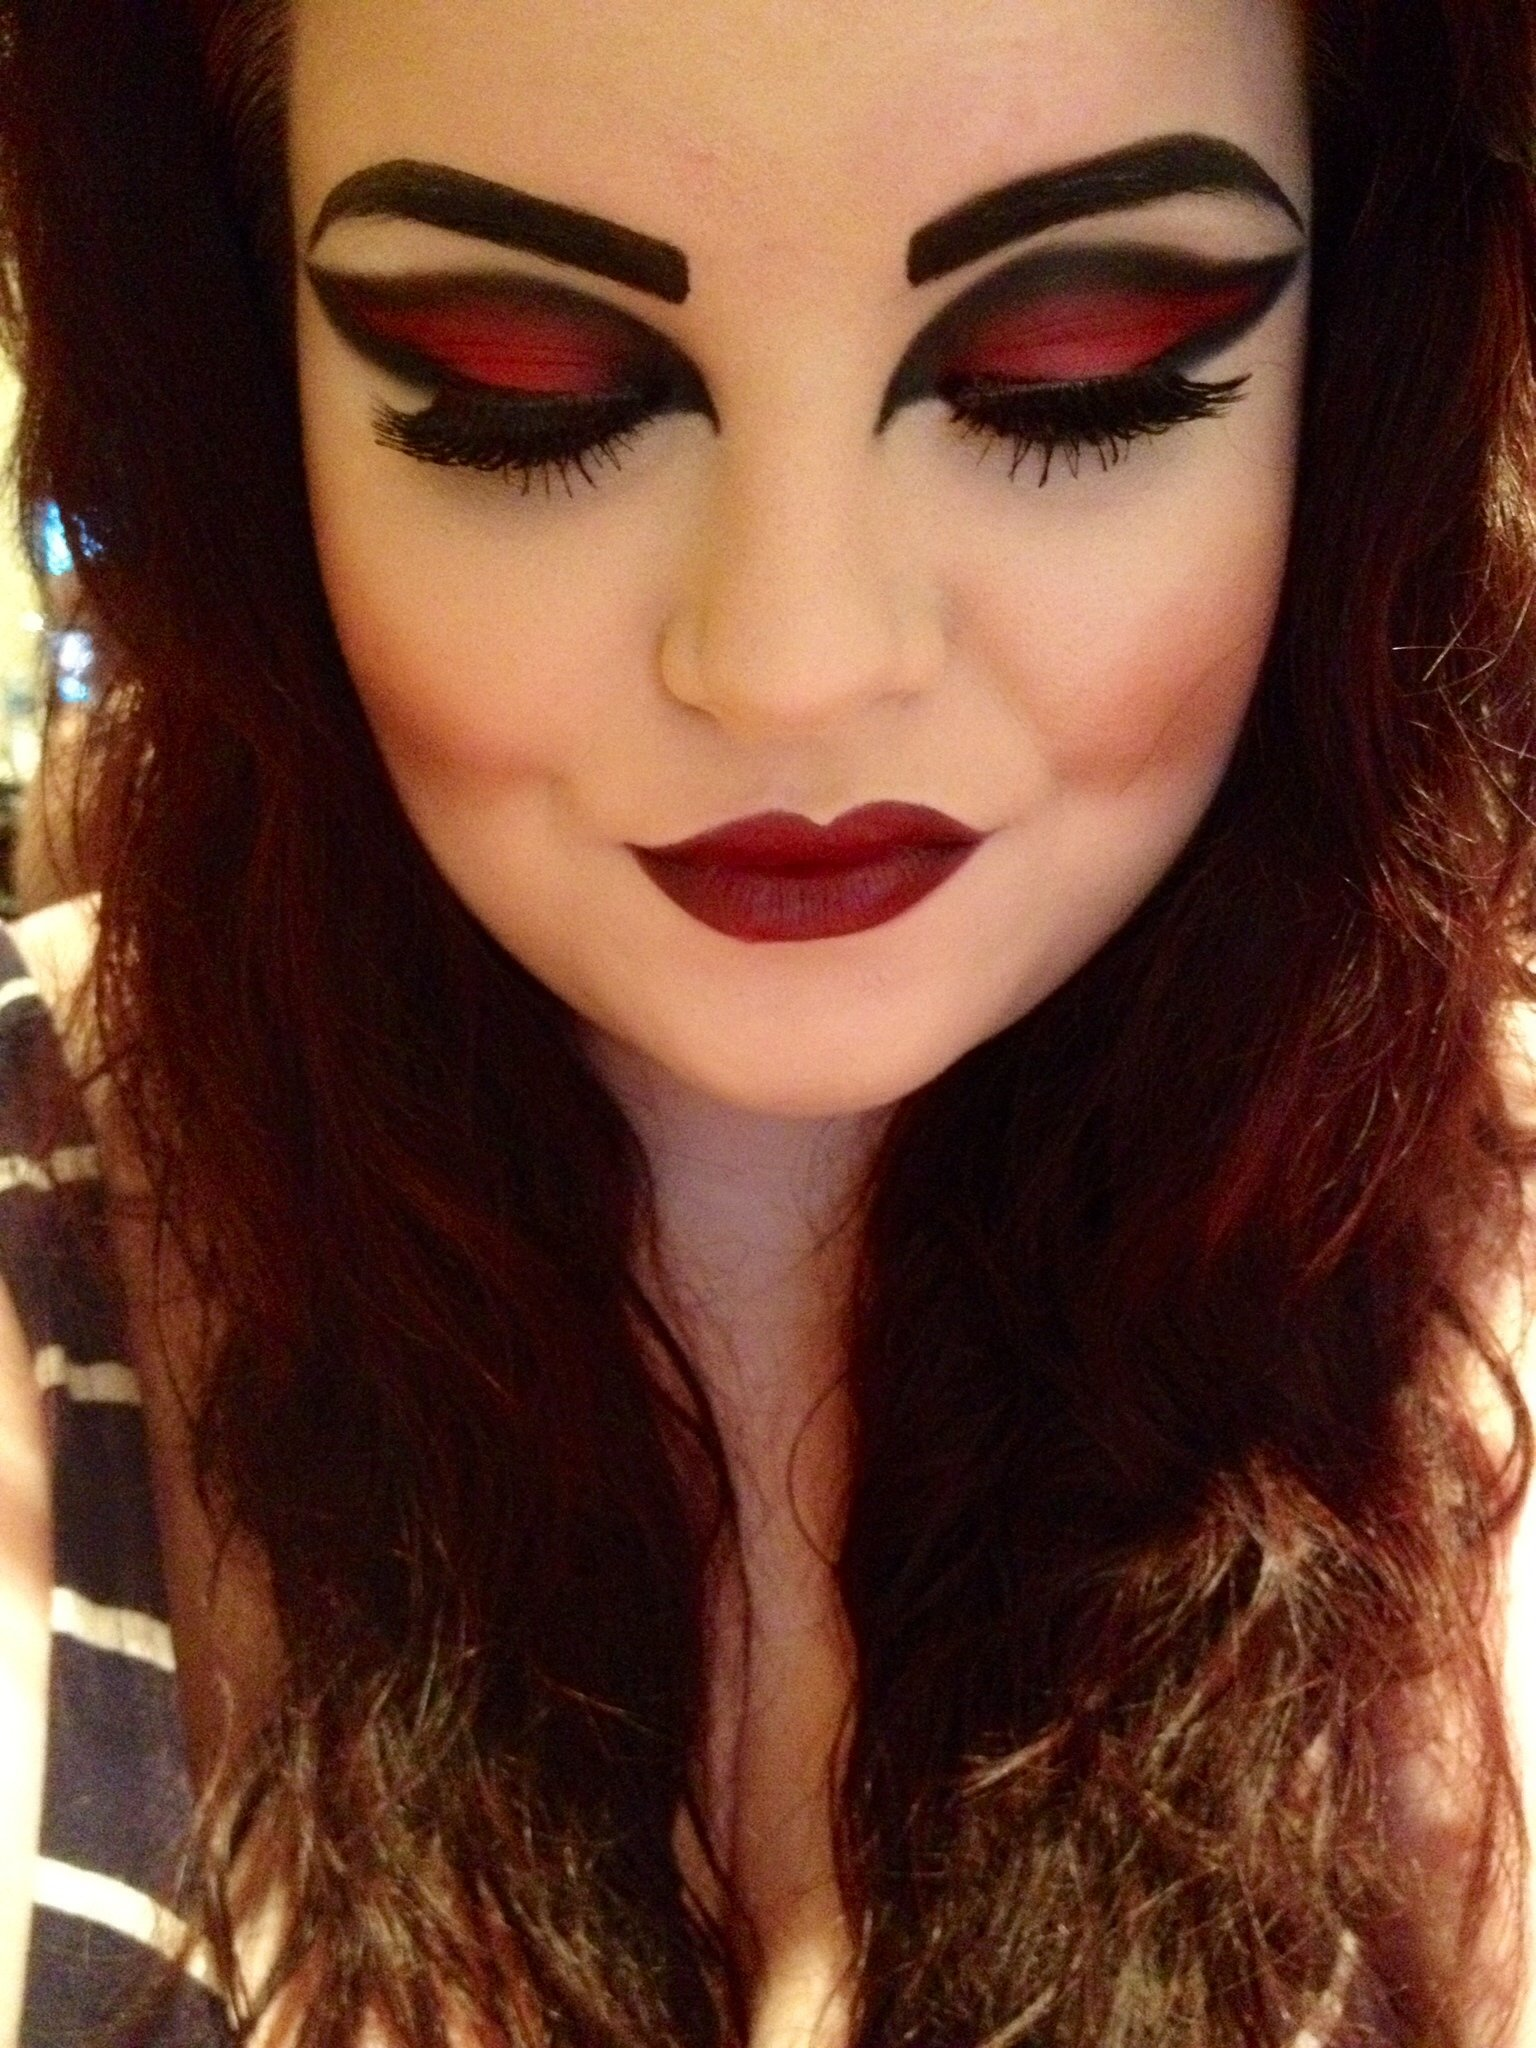 10 Trendy Vampire Makeup Ideas For Women 35 sexy and spooky halloween makeup looks thatll inspire you 2021